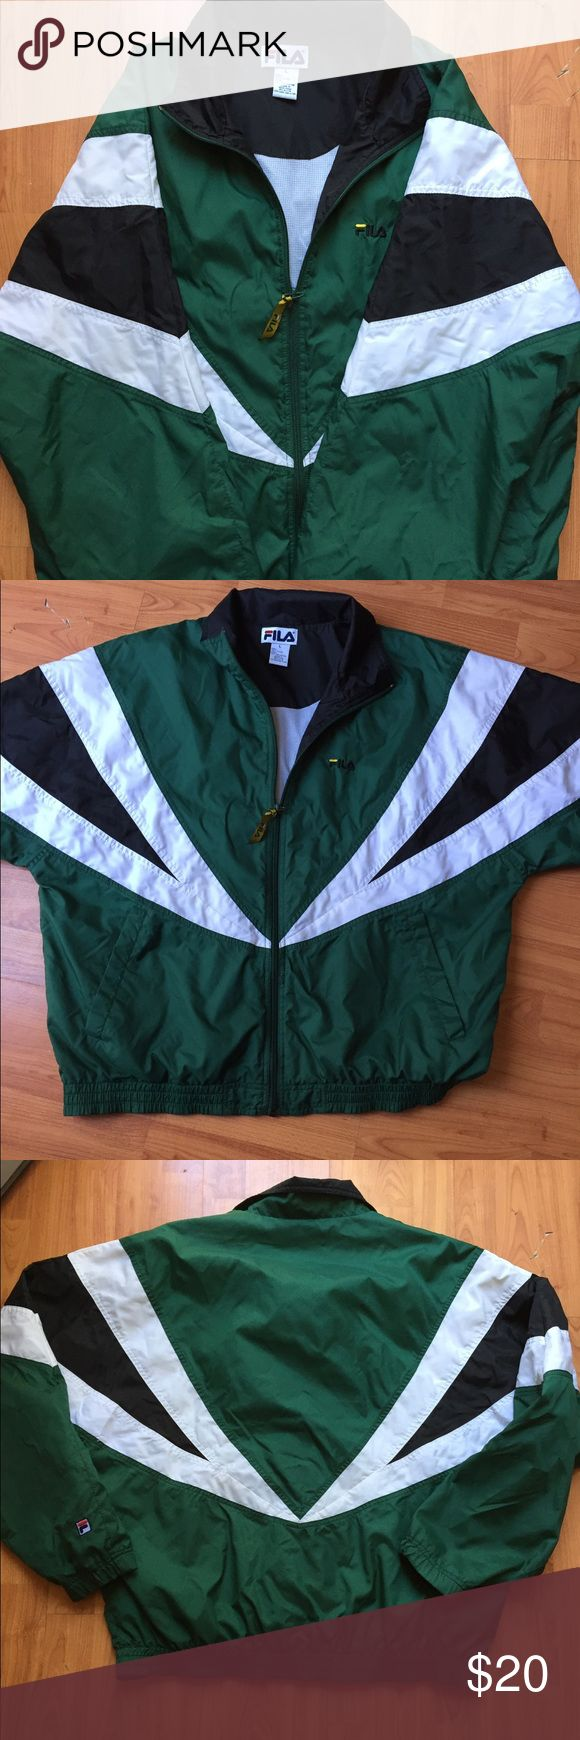 Fila vintage windbreaker!! Fila vintage windbreaker in good condition Fila Jackets & Coats Windbreakers